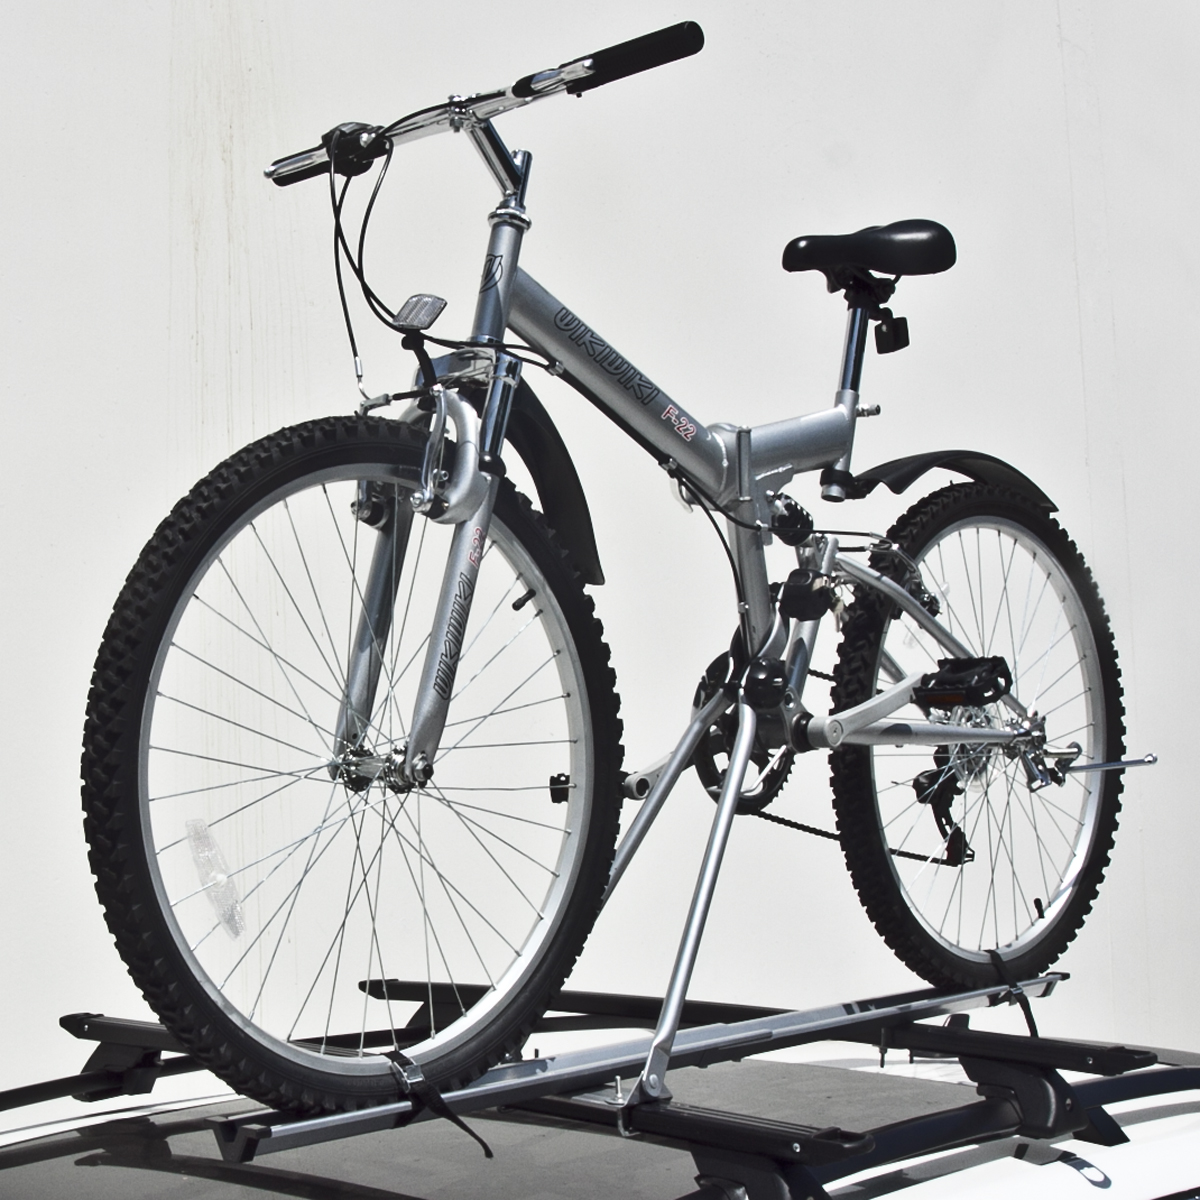 Bike Rooftop Upright NEW Roof Mount Road Beach Cruiser Bicycle CAR TOP Rack S